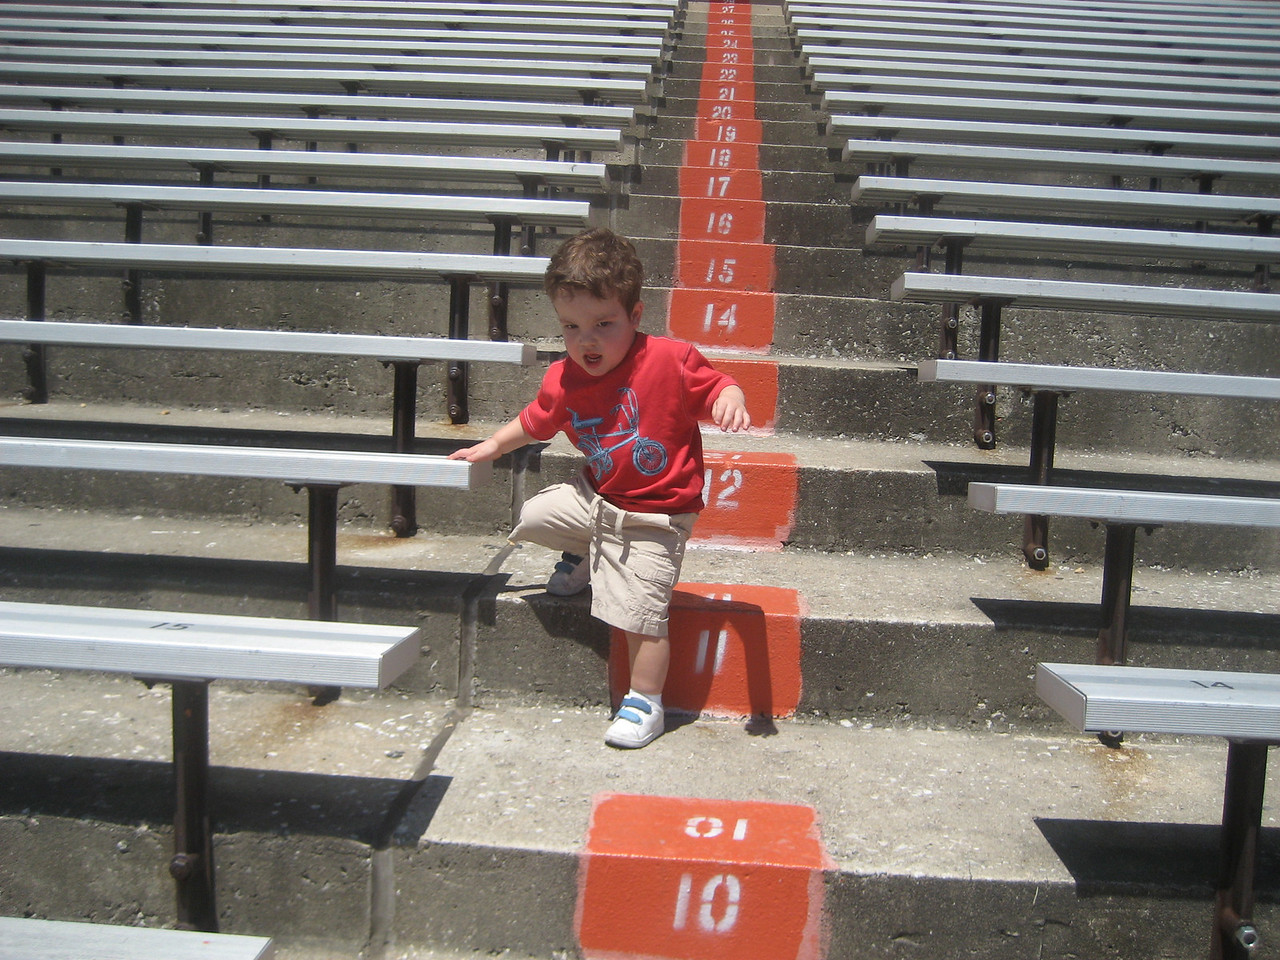 Gabe, running stadiums.  It is never to early to start getting into shape...